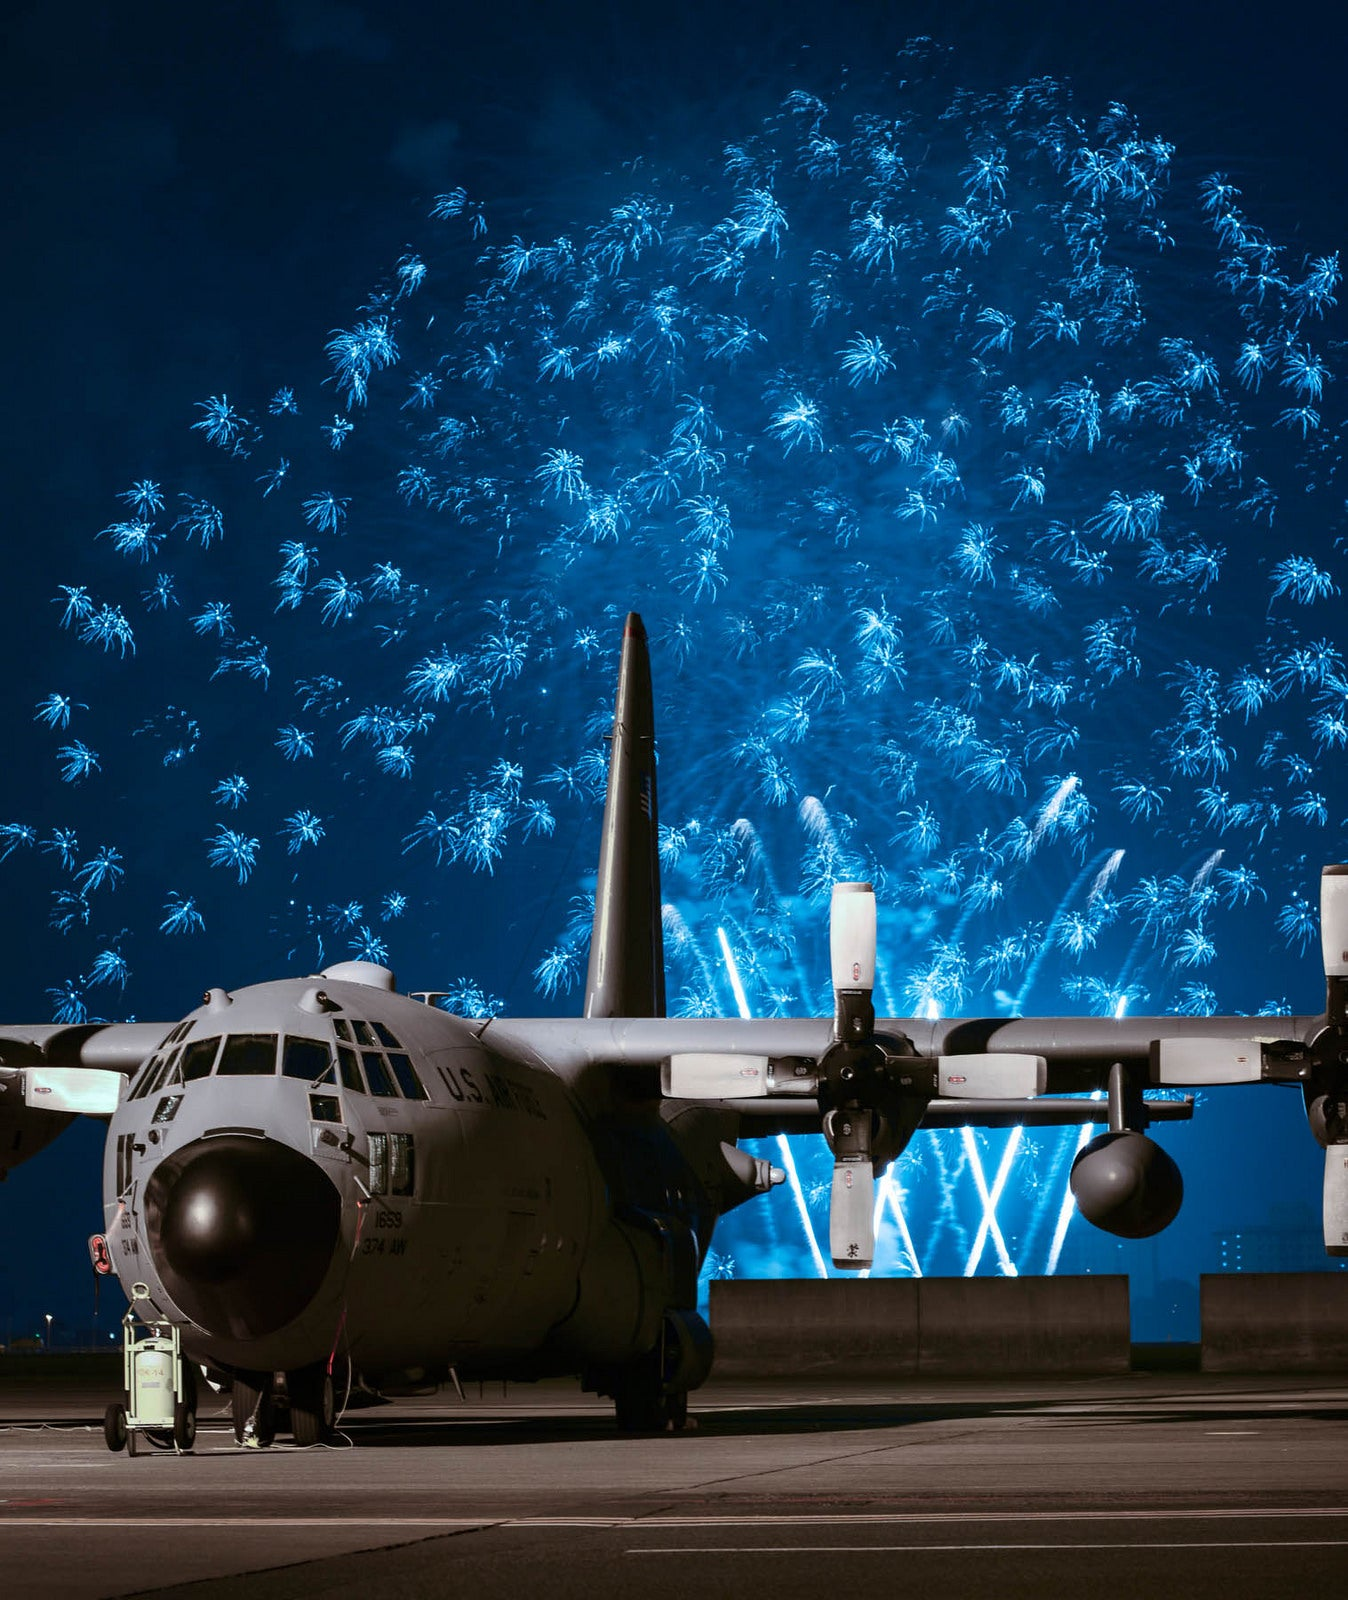 Electric blue fireworks light up the sky behind a C-130 Hercules plane